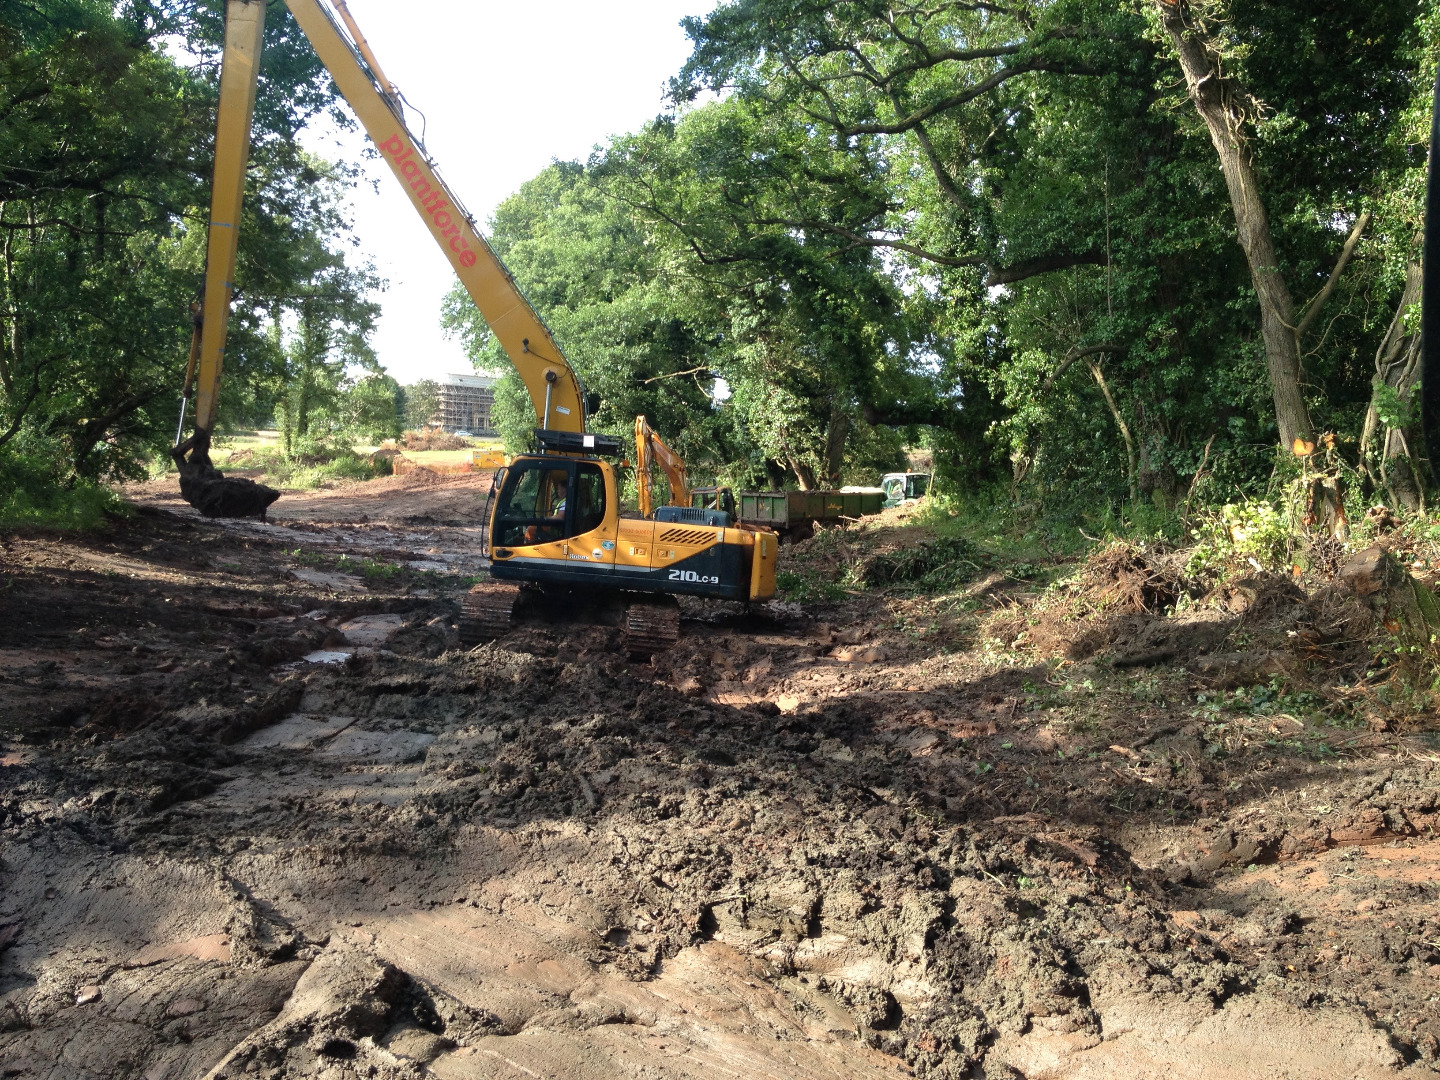 Excavator in large lake removing silt at Sand hill park Bishops Lydeard